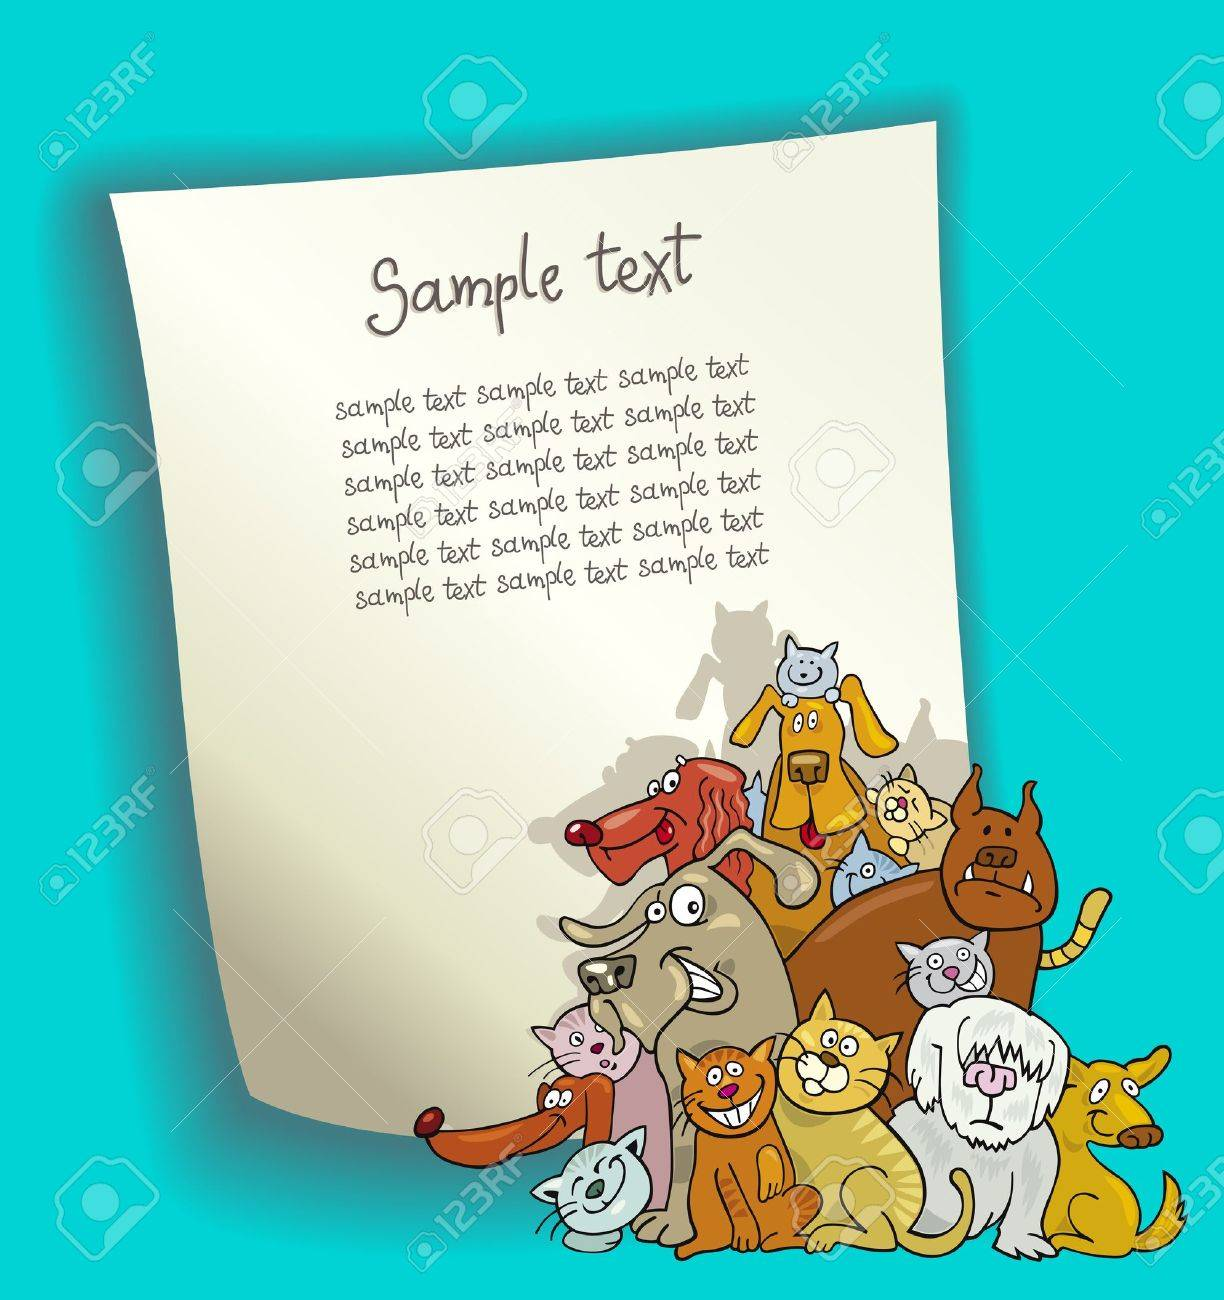 cartoon design illustration with blank page and group of cats and dogs Stock Vector - 13483458